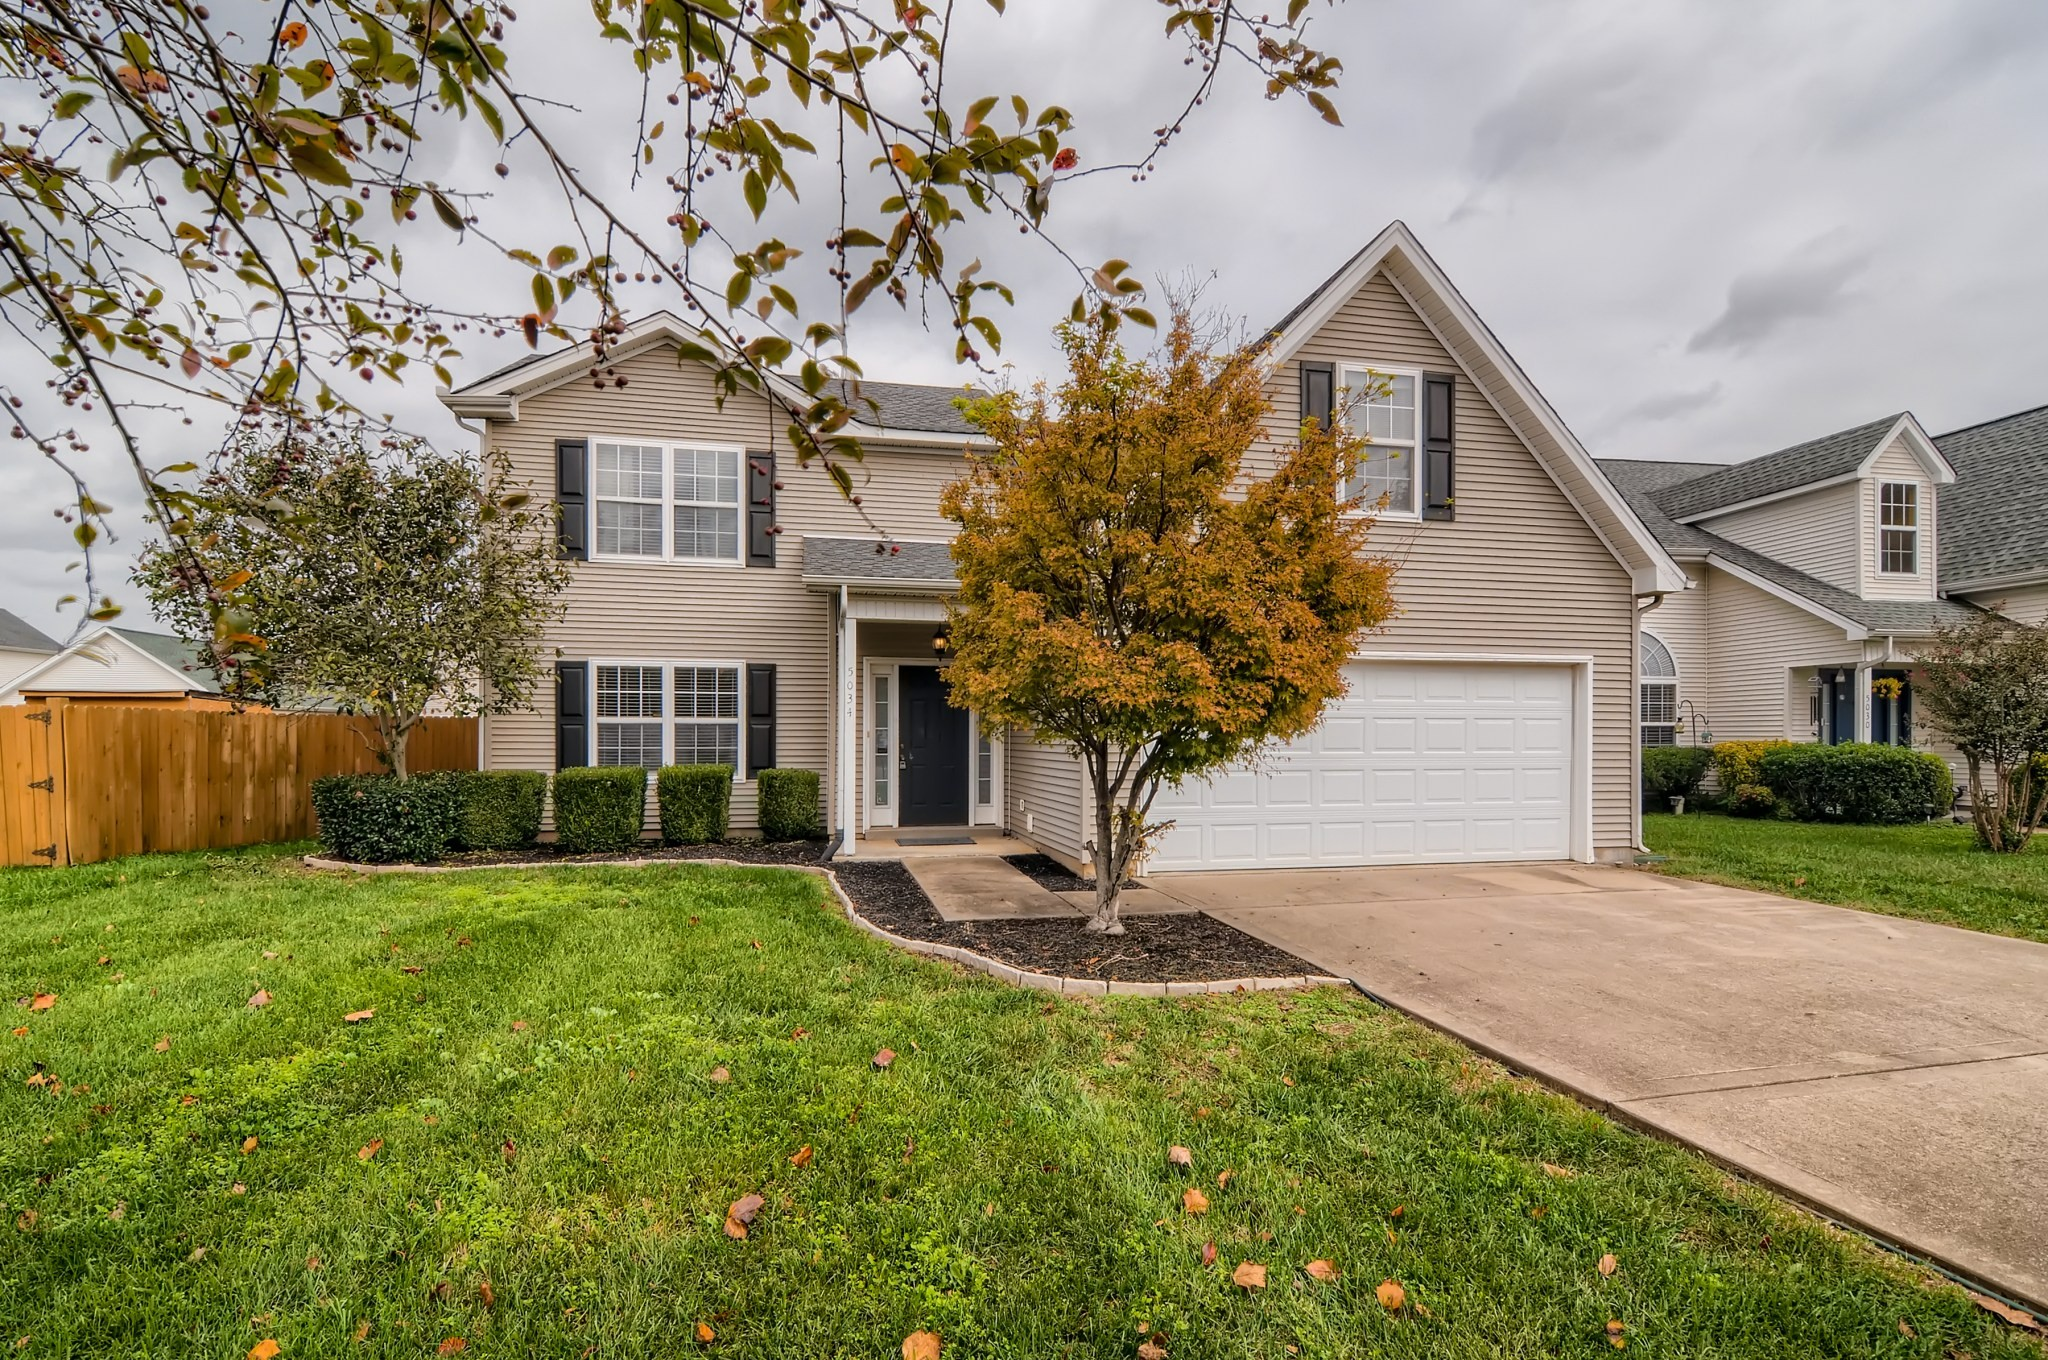 Minutes to Veterans Parkway, I-840, I-24, and The Avenue. The kitchen features stainless appliances & white cabinets. Newer tile & laminate floors. Masterbath garden tub. Approximately 400 ft unfinished bonus room. Professional landscaping & privacy fence. In a cul-de-sac!